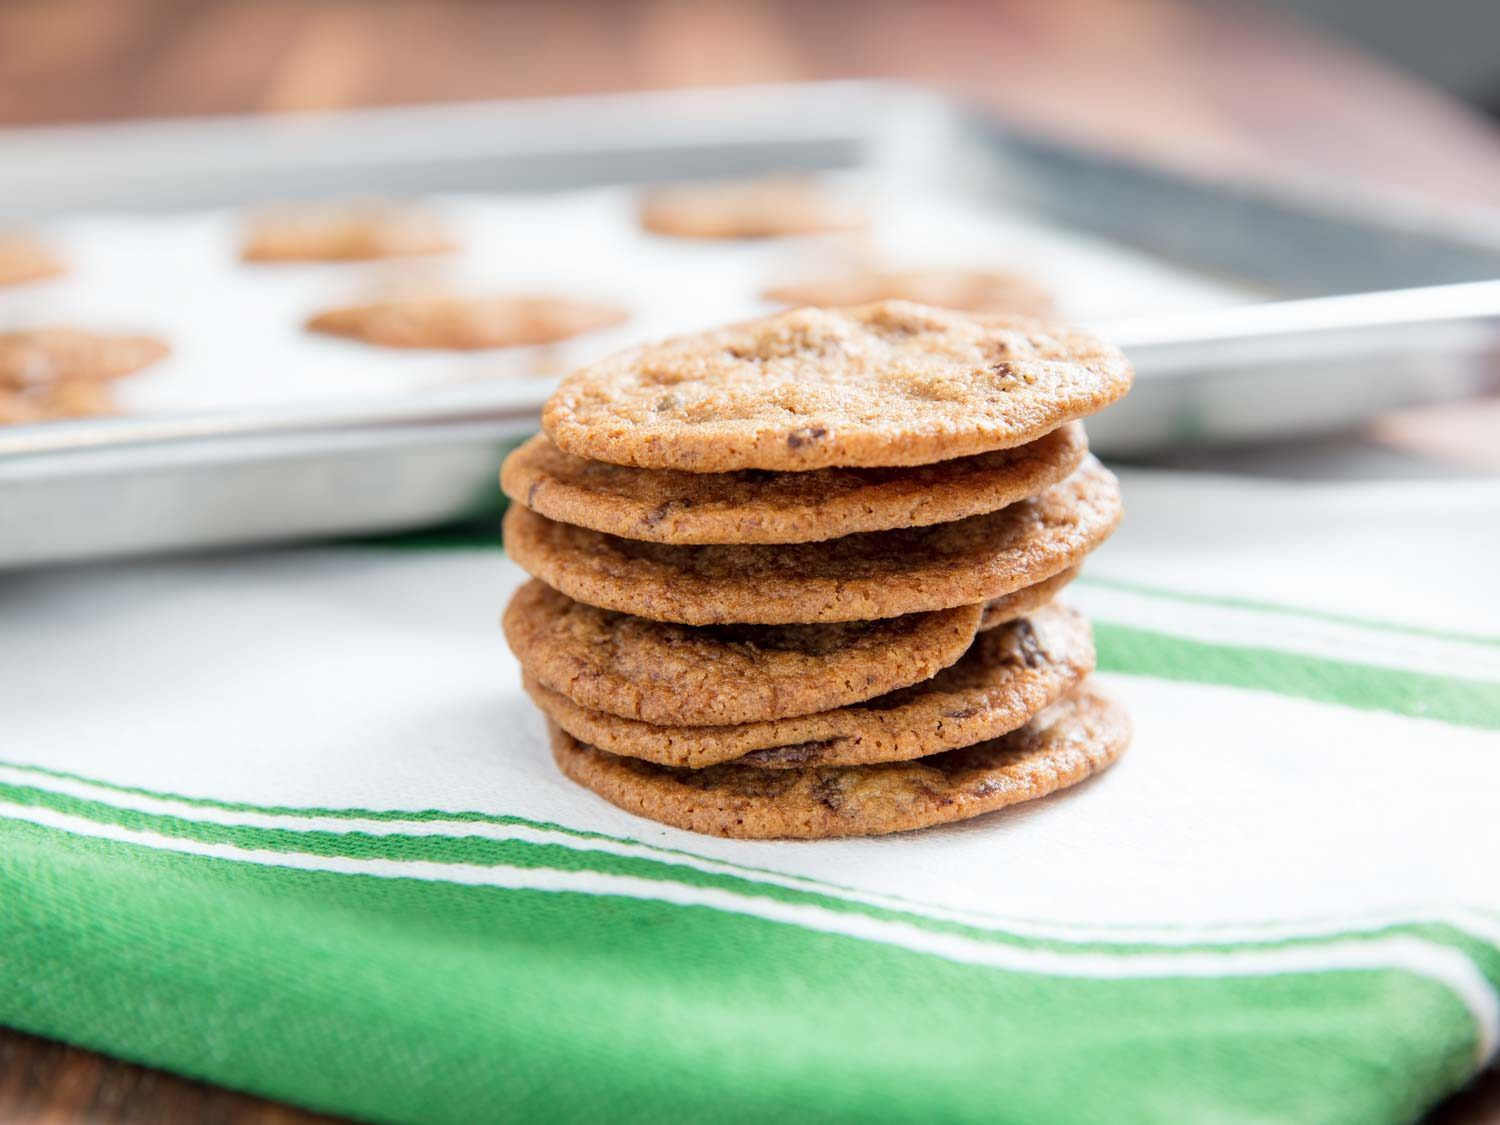 a stack of ultra-thin chocolate chip cookies